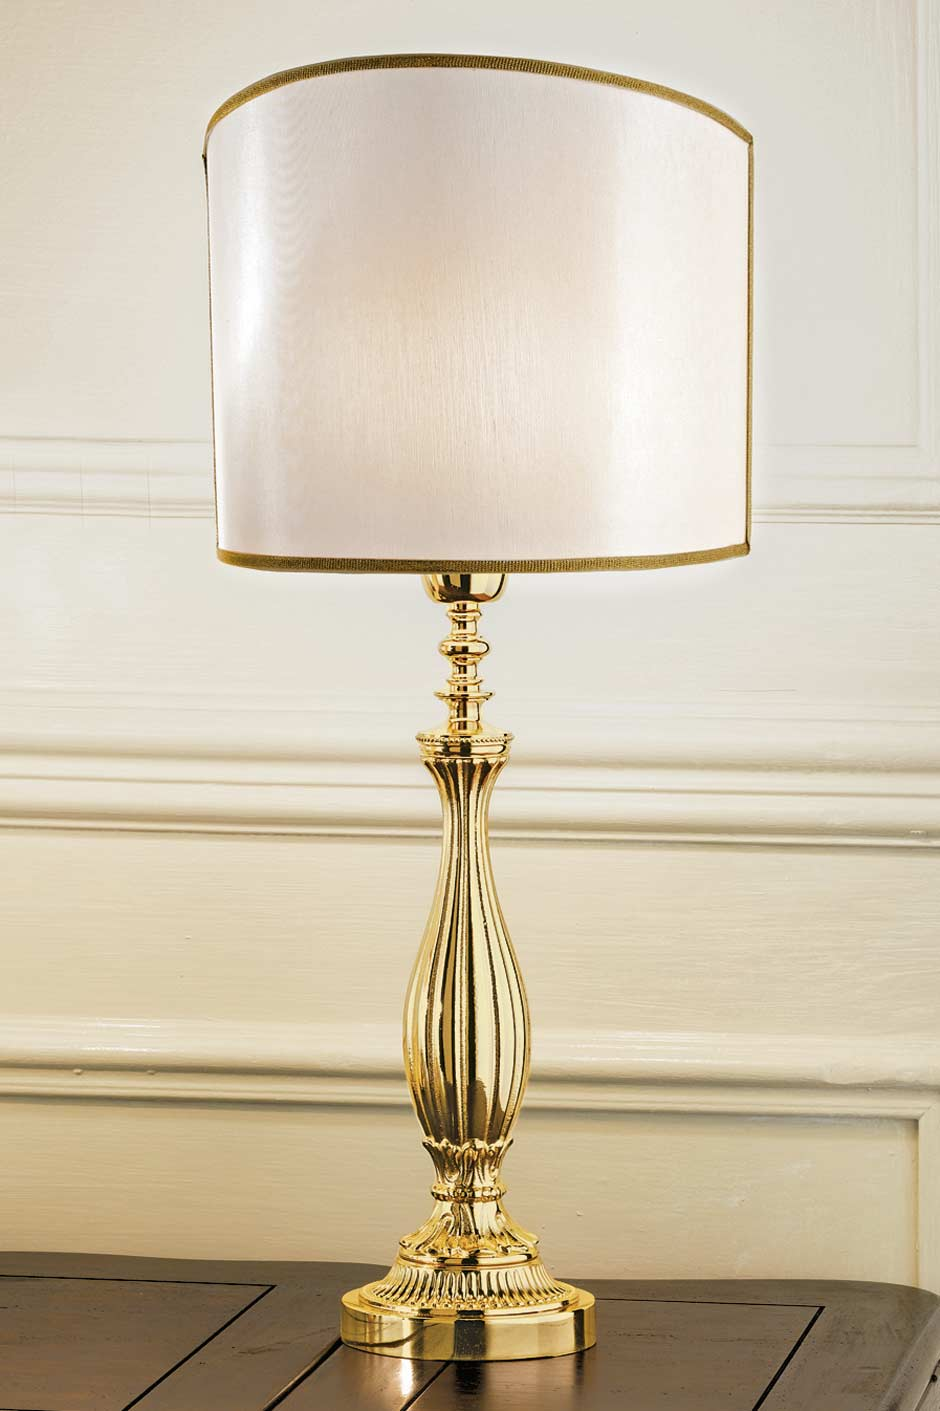 Large gold-plated bronze table lamp with pale-beige shade. Masiero.